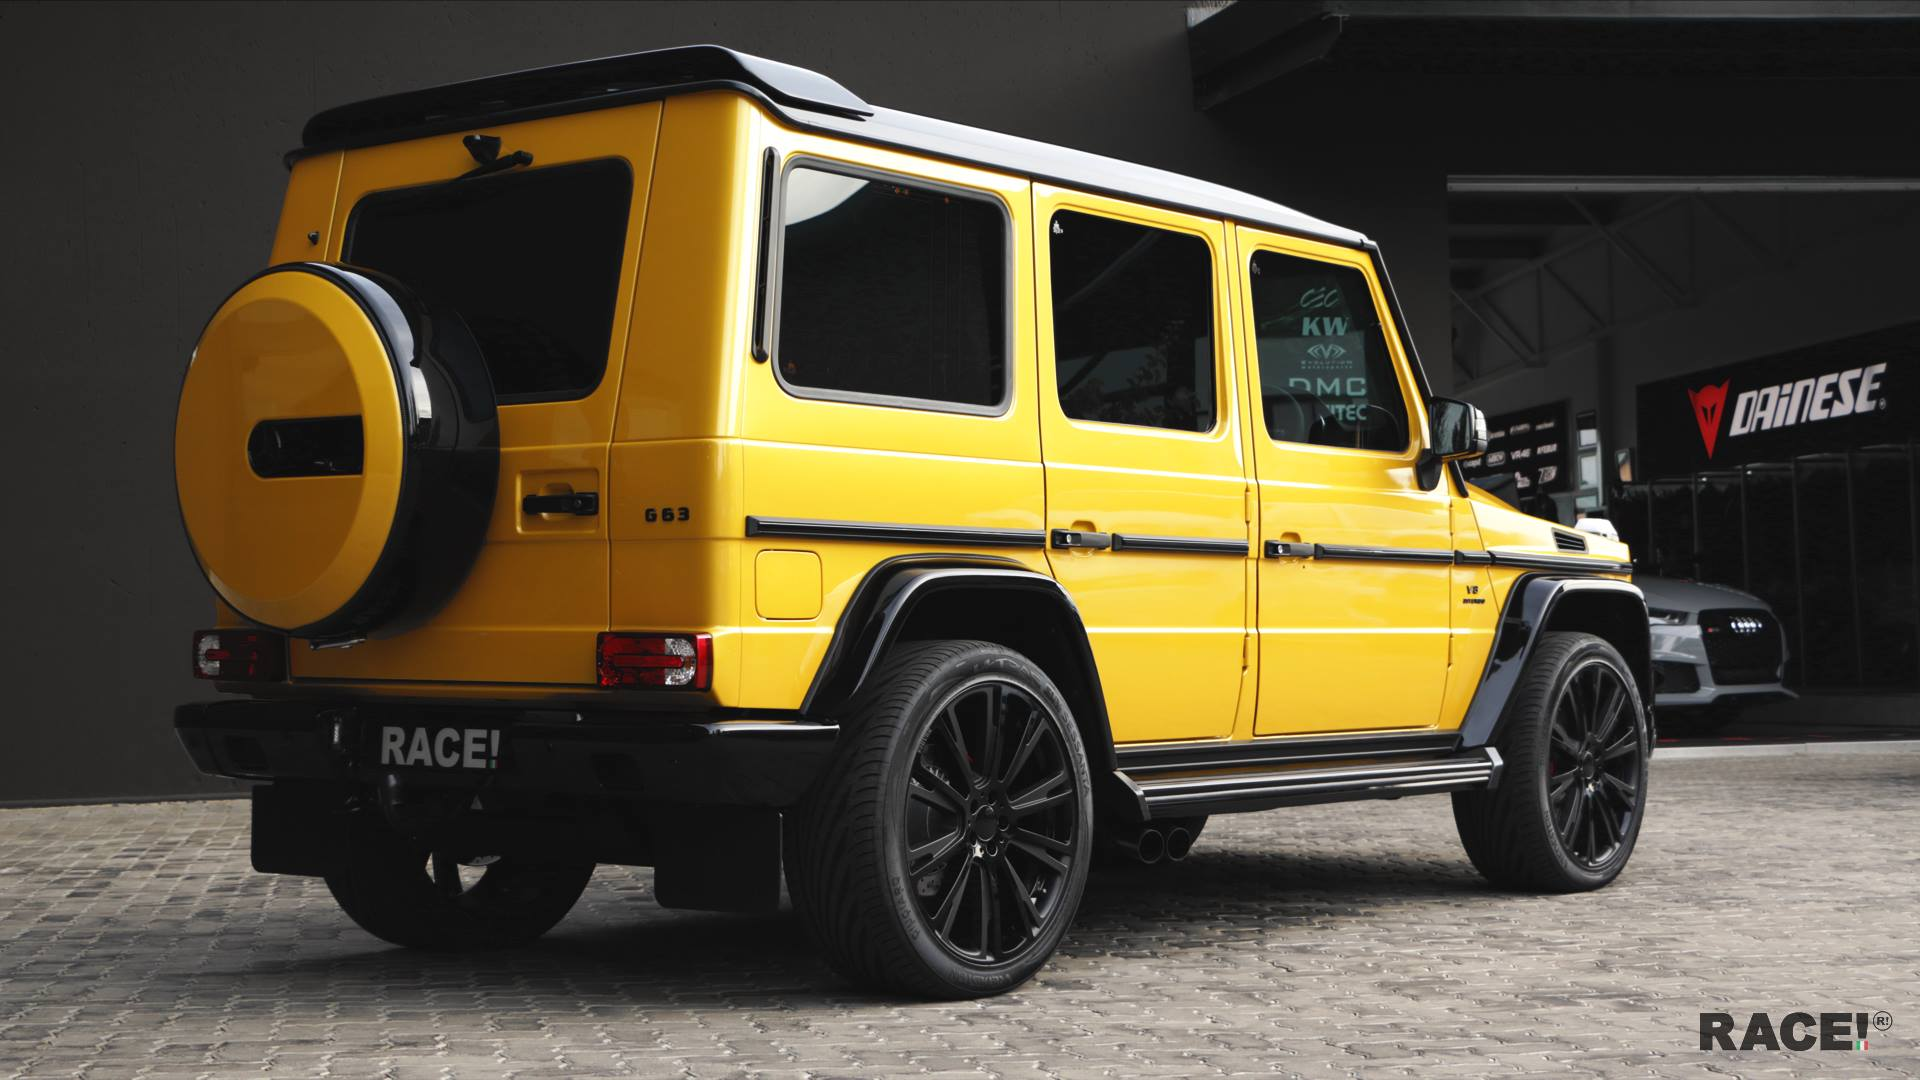 Crazy Color Yellow G63 Amg With Brabus Parts By Race 106373 also Mercedes S550 Custom Grille as well Wallpaper 04 besides 2018 Porsche Cayenne Exterior Color Options as well E63 4matic 11a. on 2017 mercedes benz s class